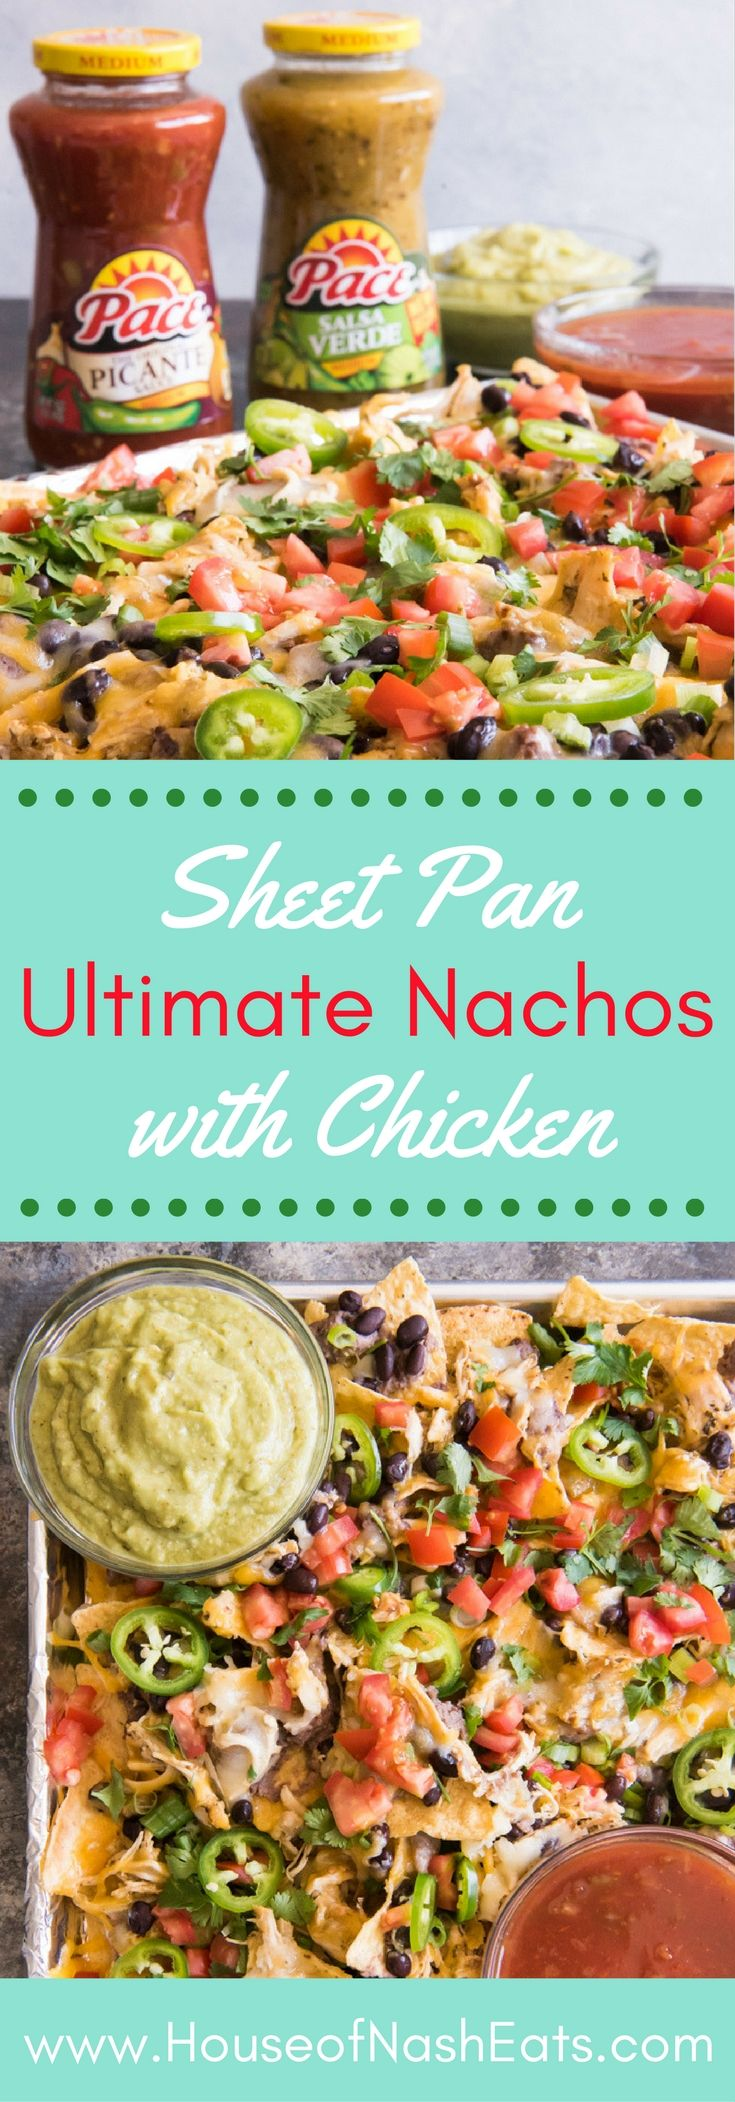 These Sheet Pan Ultimate Nachos with Slow Cooker Salsa Verde Ranch Chicken are the perfect Game Day food! Get everything you need at Walmart and serve them with not one, but TWO easy sauce options for dipping the cheesy, loaded nachos in before devouring! #MakeGameTimeSaucy #CollectiveBias #ad